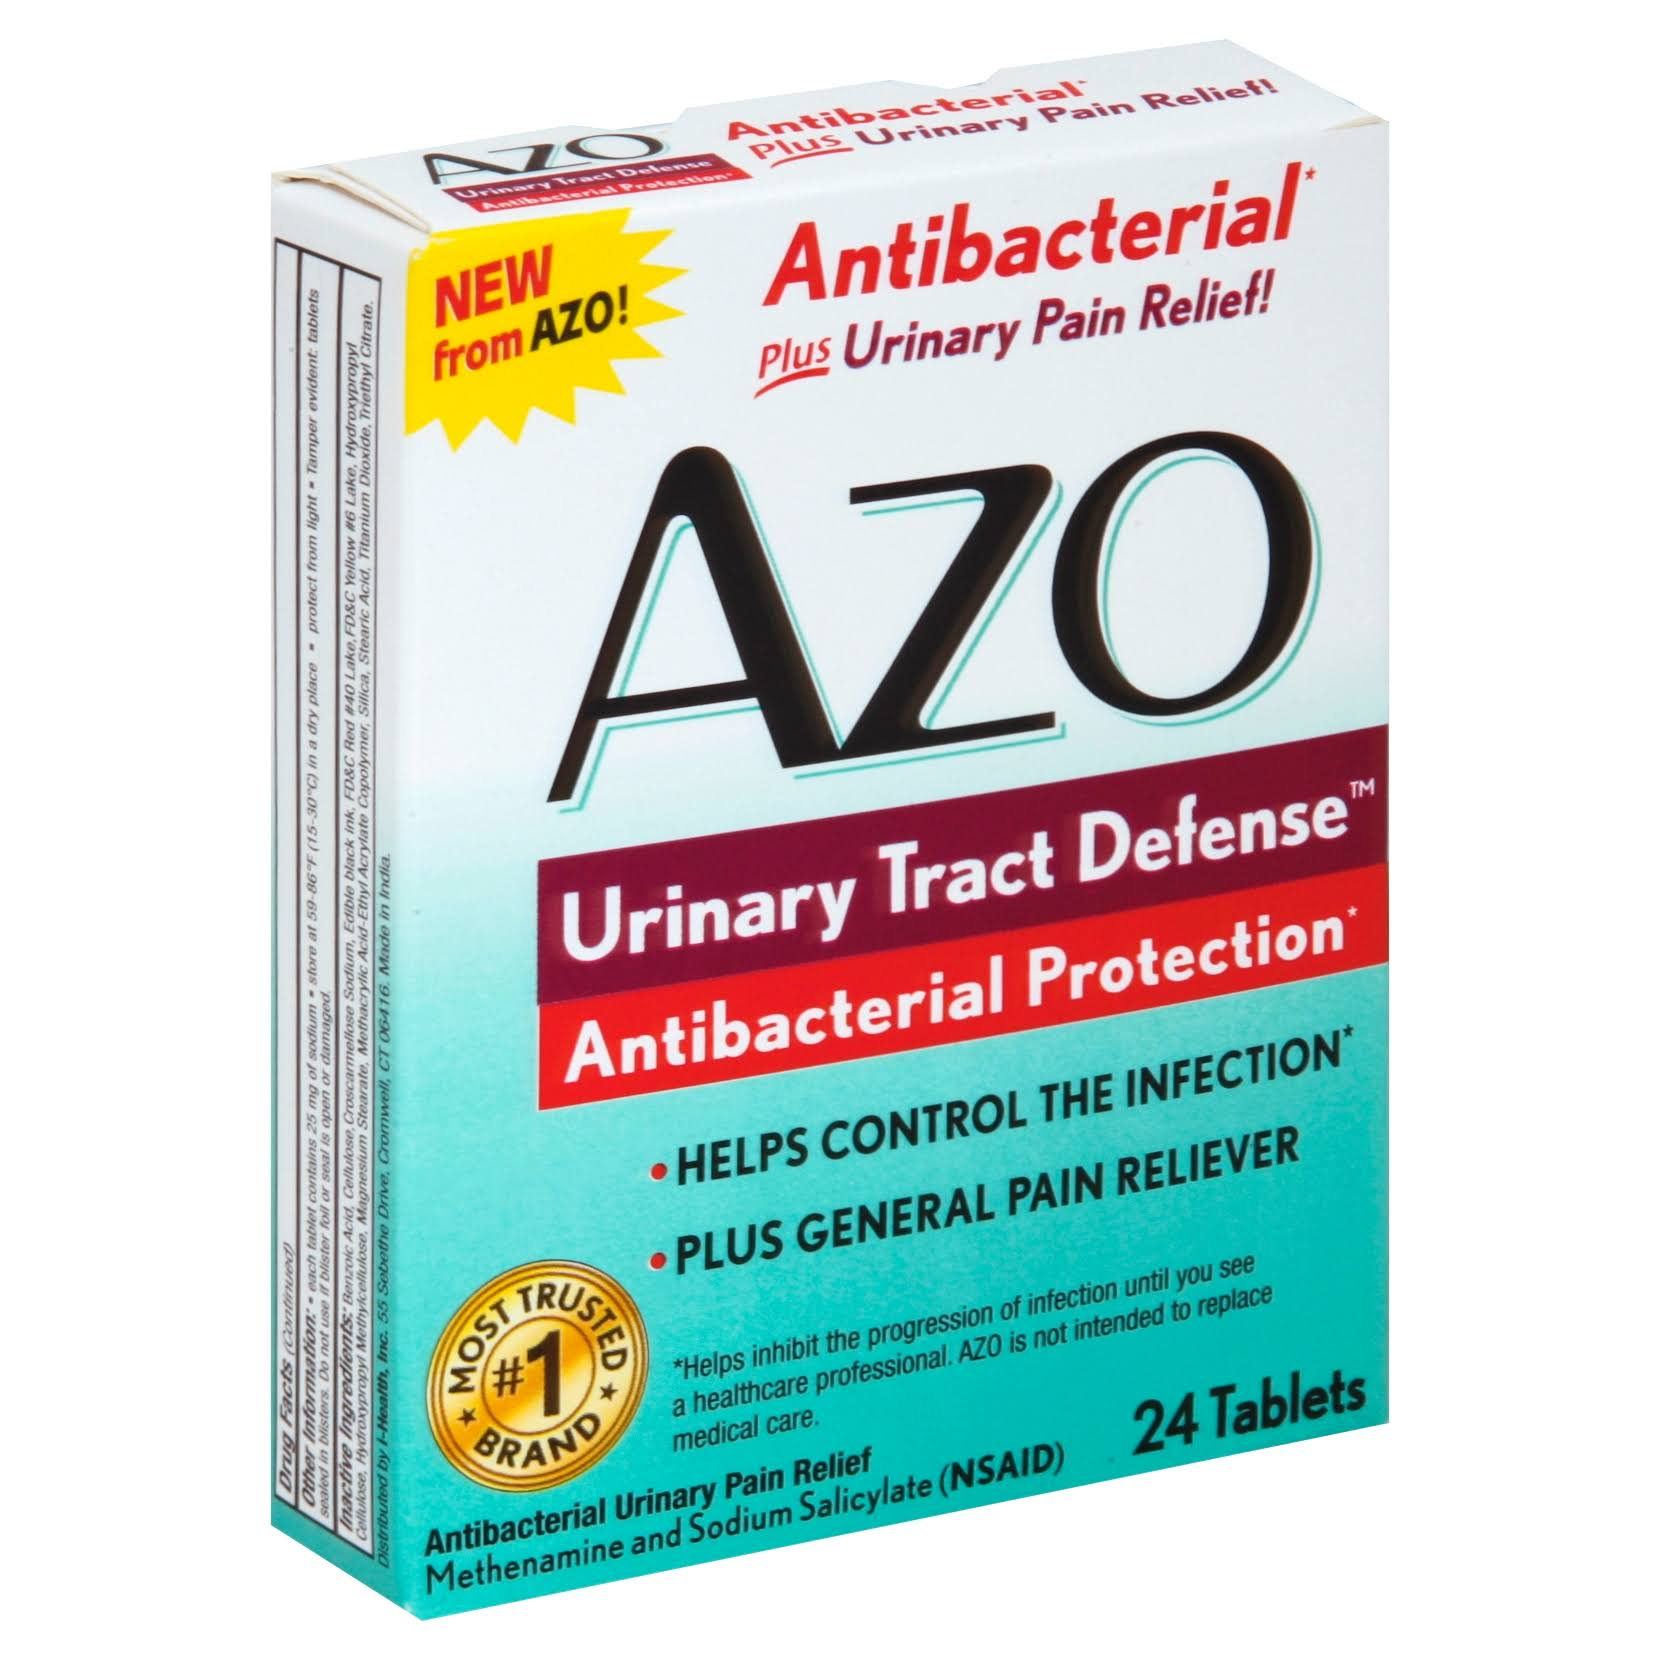 Azo Urinary Tract Defense Antibacterial Urinary Pain Relief Medicine - 24ct